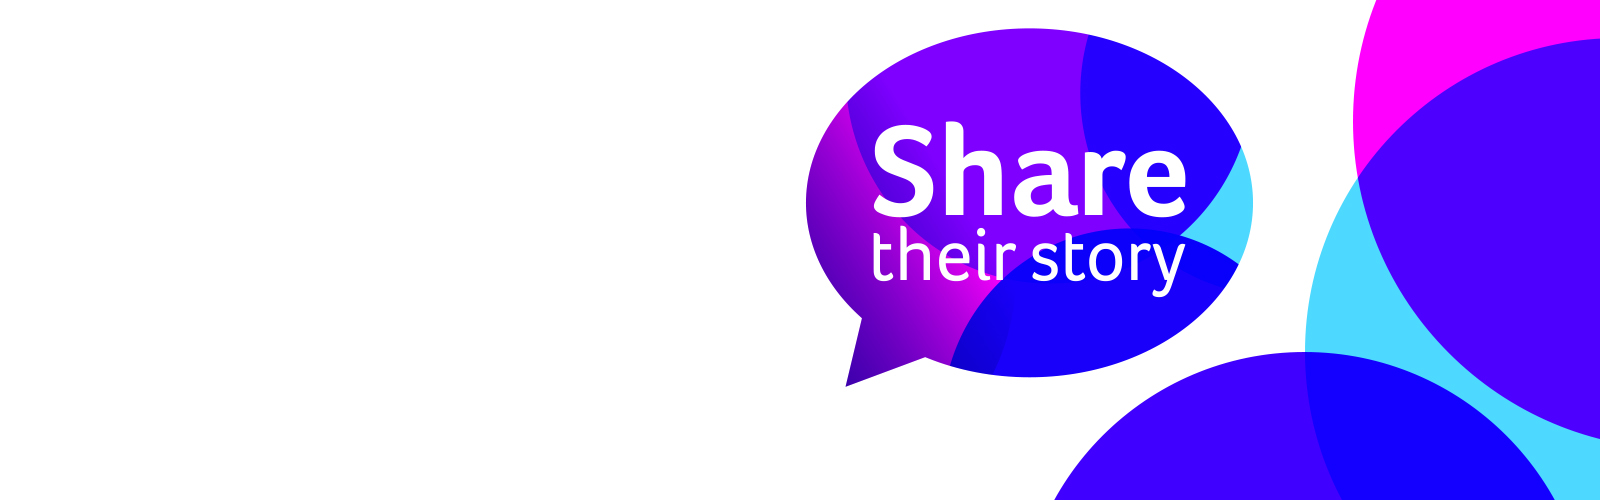 Share their story logo